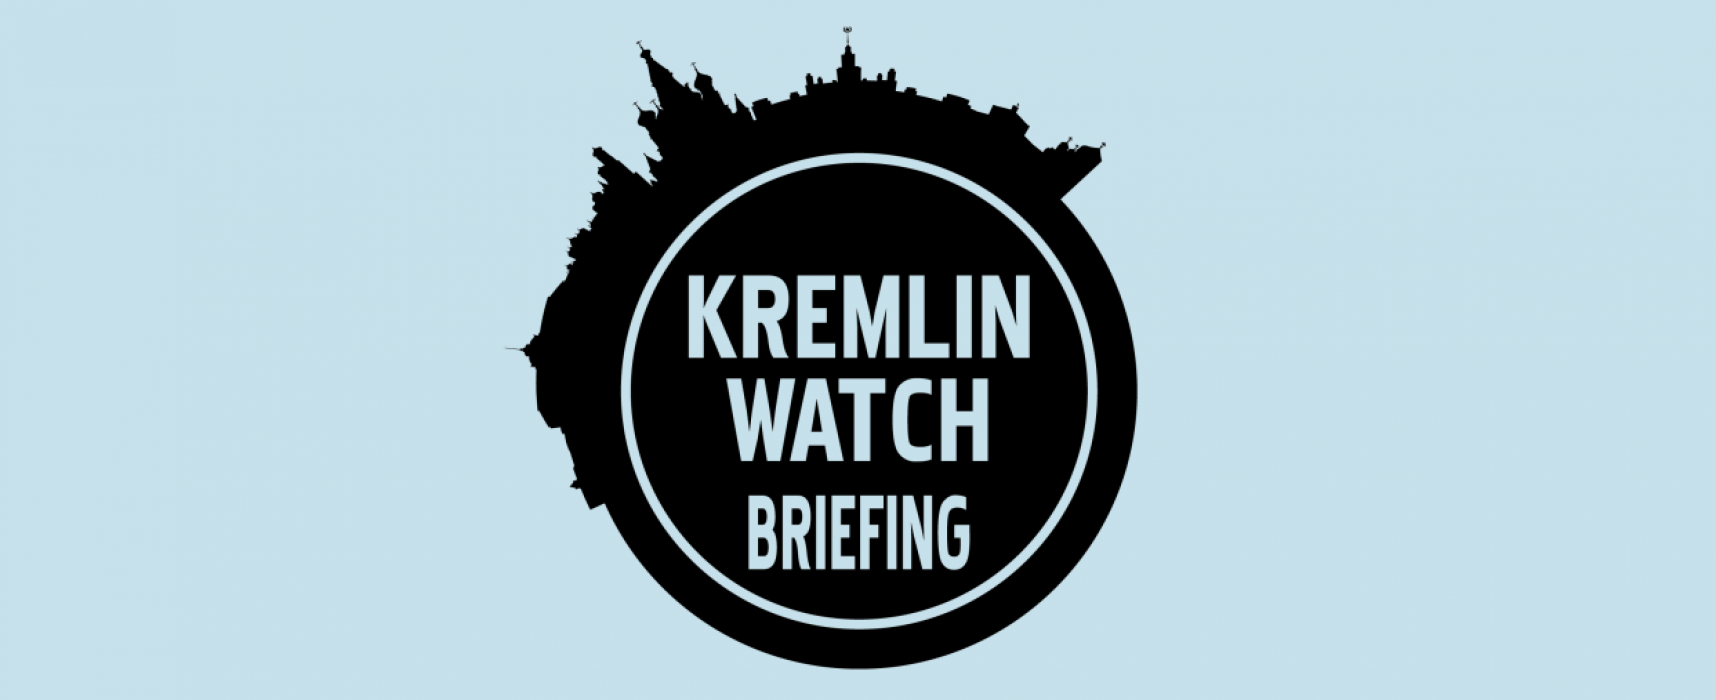 Kremlin Watch Briefing: Pro-Kremlin Twitter accounts promoted Brexit